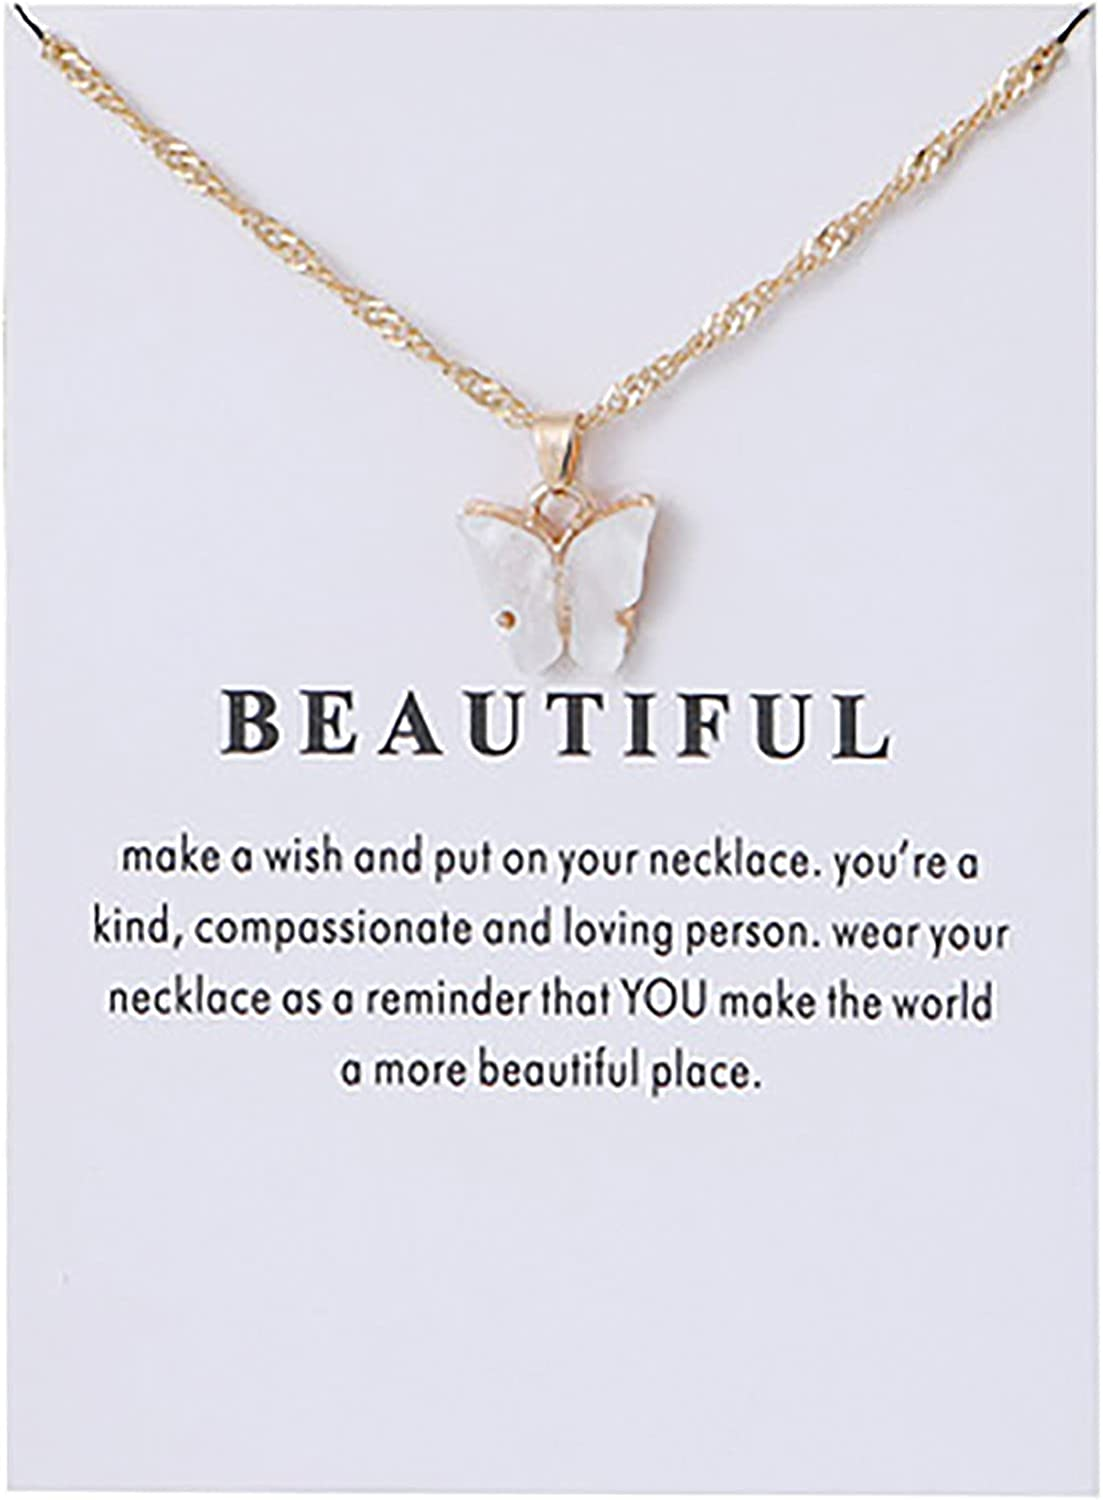 Qinday Acrylic Butterfly Pendant Necklace, Constellation Alloy Pendant Necklace Chain Jewelry Gift Card for Women,Girls,Mom, Birthday,Xmas,Thanksgiving